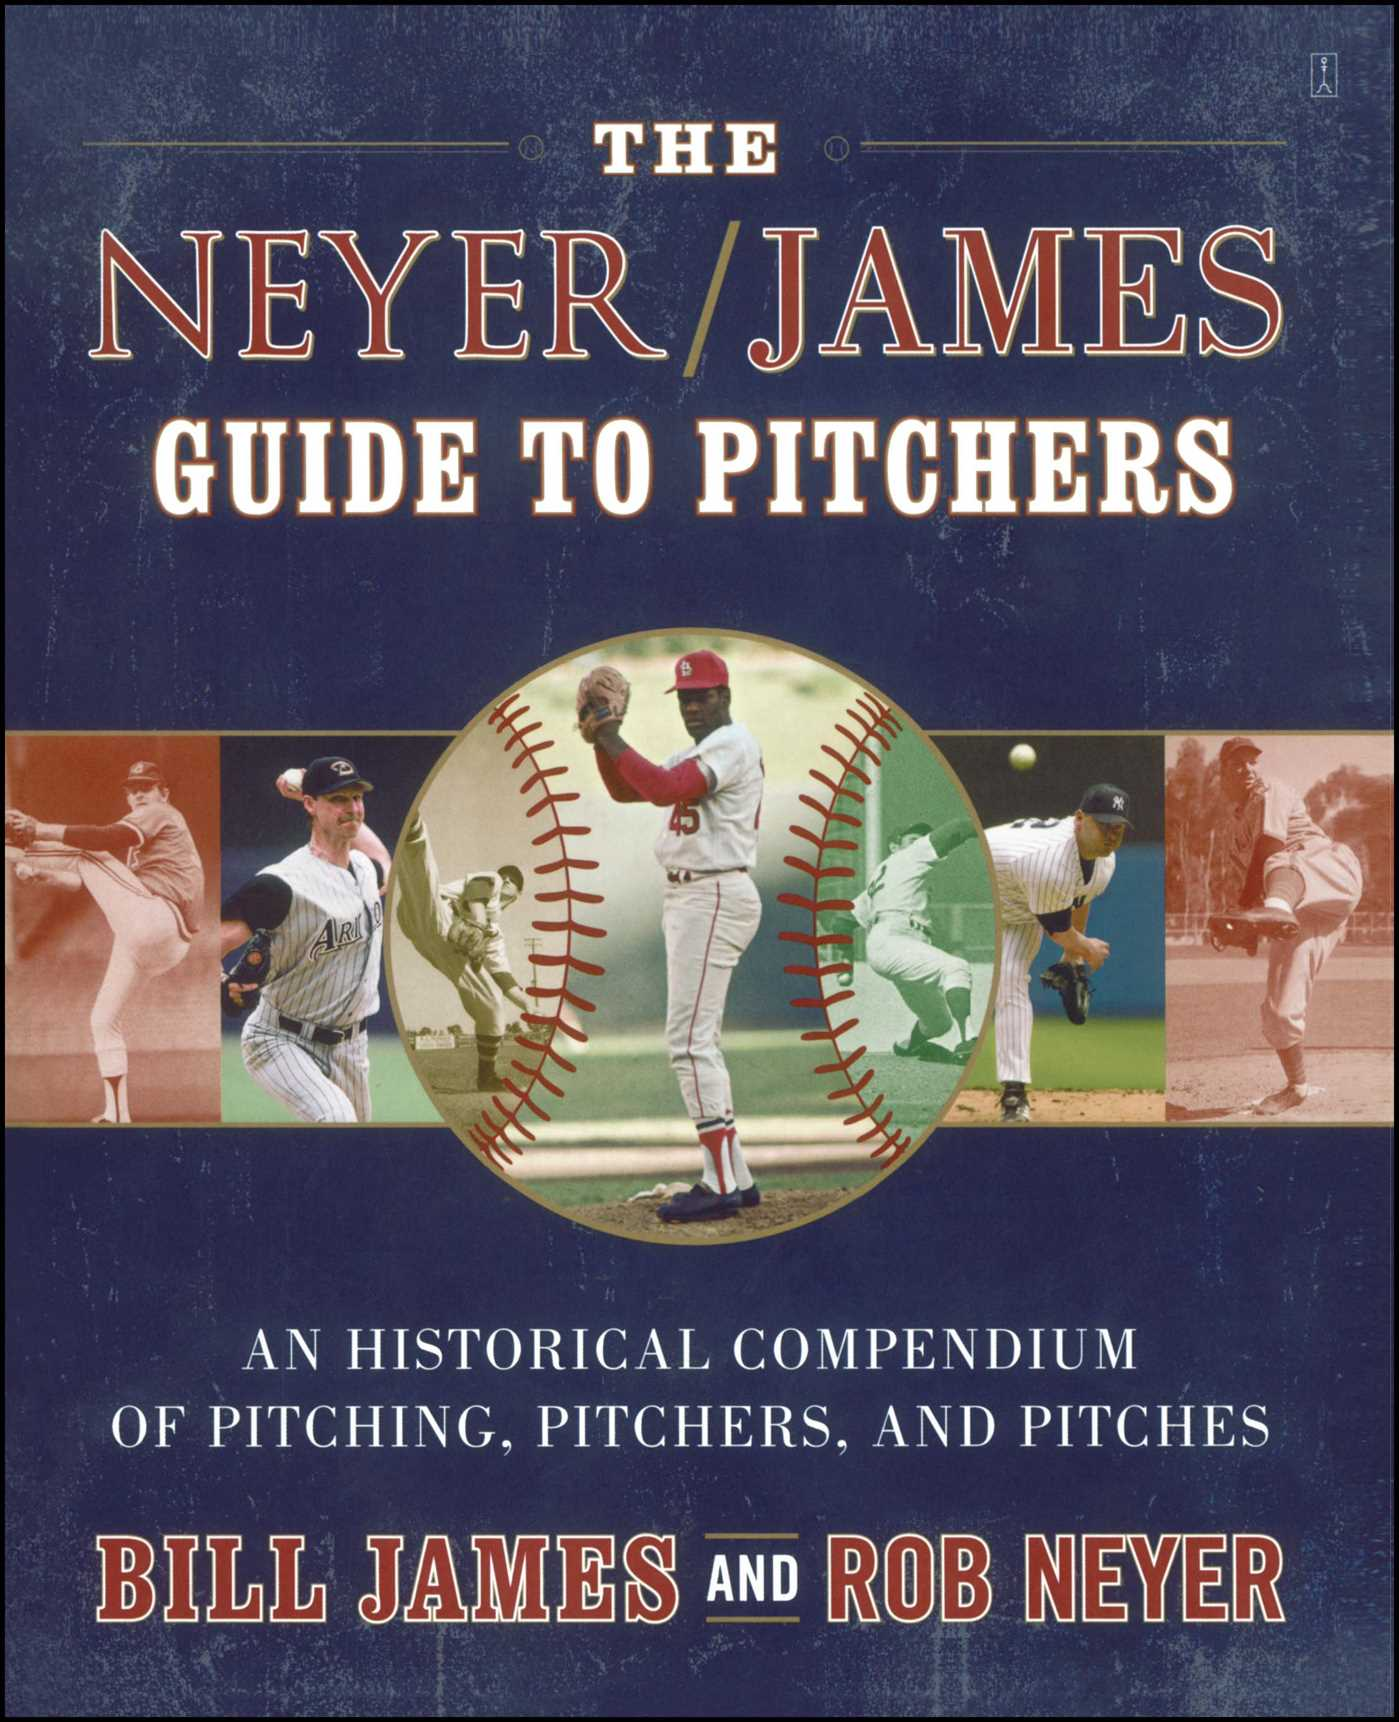 The neyer james guide to pitchers 9781439103777 hr